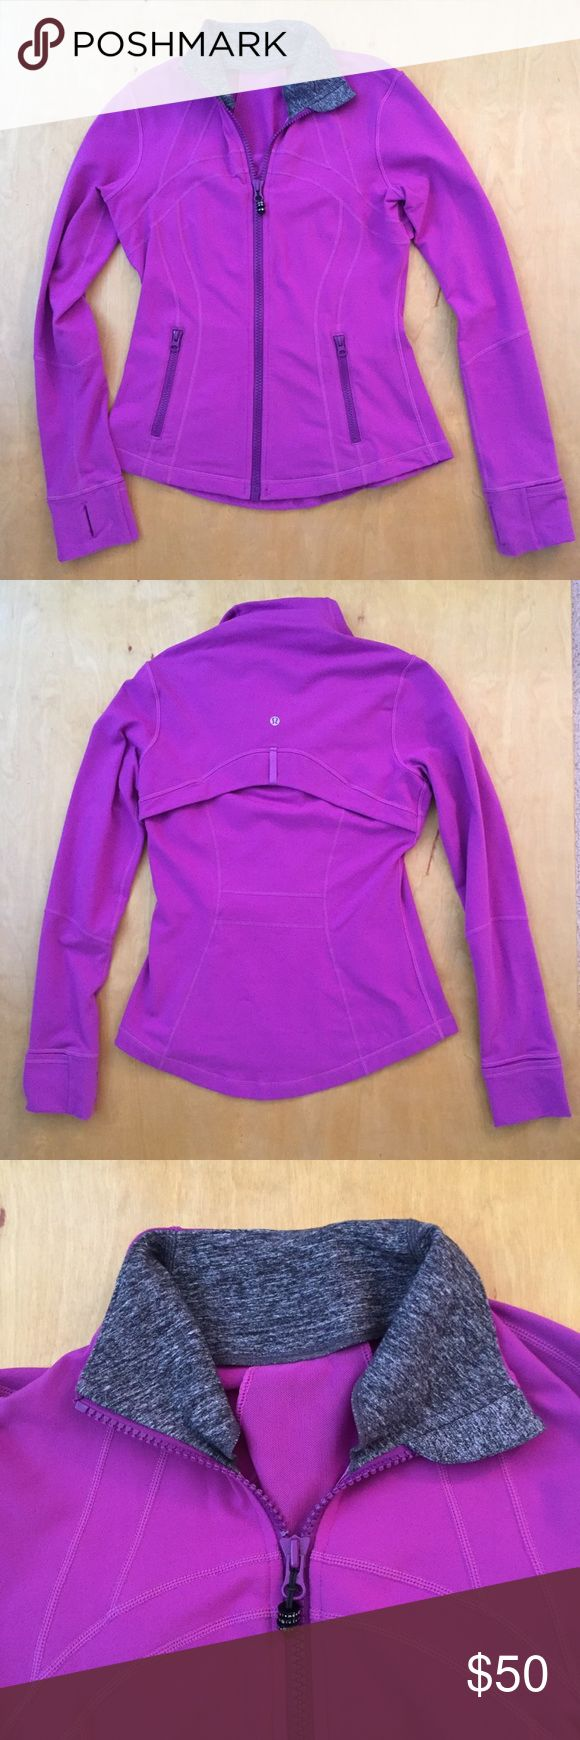 Lululemon Define Jacket Lululemon Define Jacket. Color is a bright violet with a black/grey space dye collar. Really cool combo lock zipper pull. Used condition with some pilling especially under the arms, near zipper pockets, and cuffs. Cuffs are a bit grubby but may come clean in the laundry.. lululemon athletica Tops Sweatshirts & Hoodies